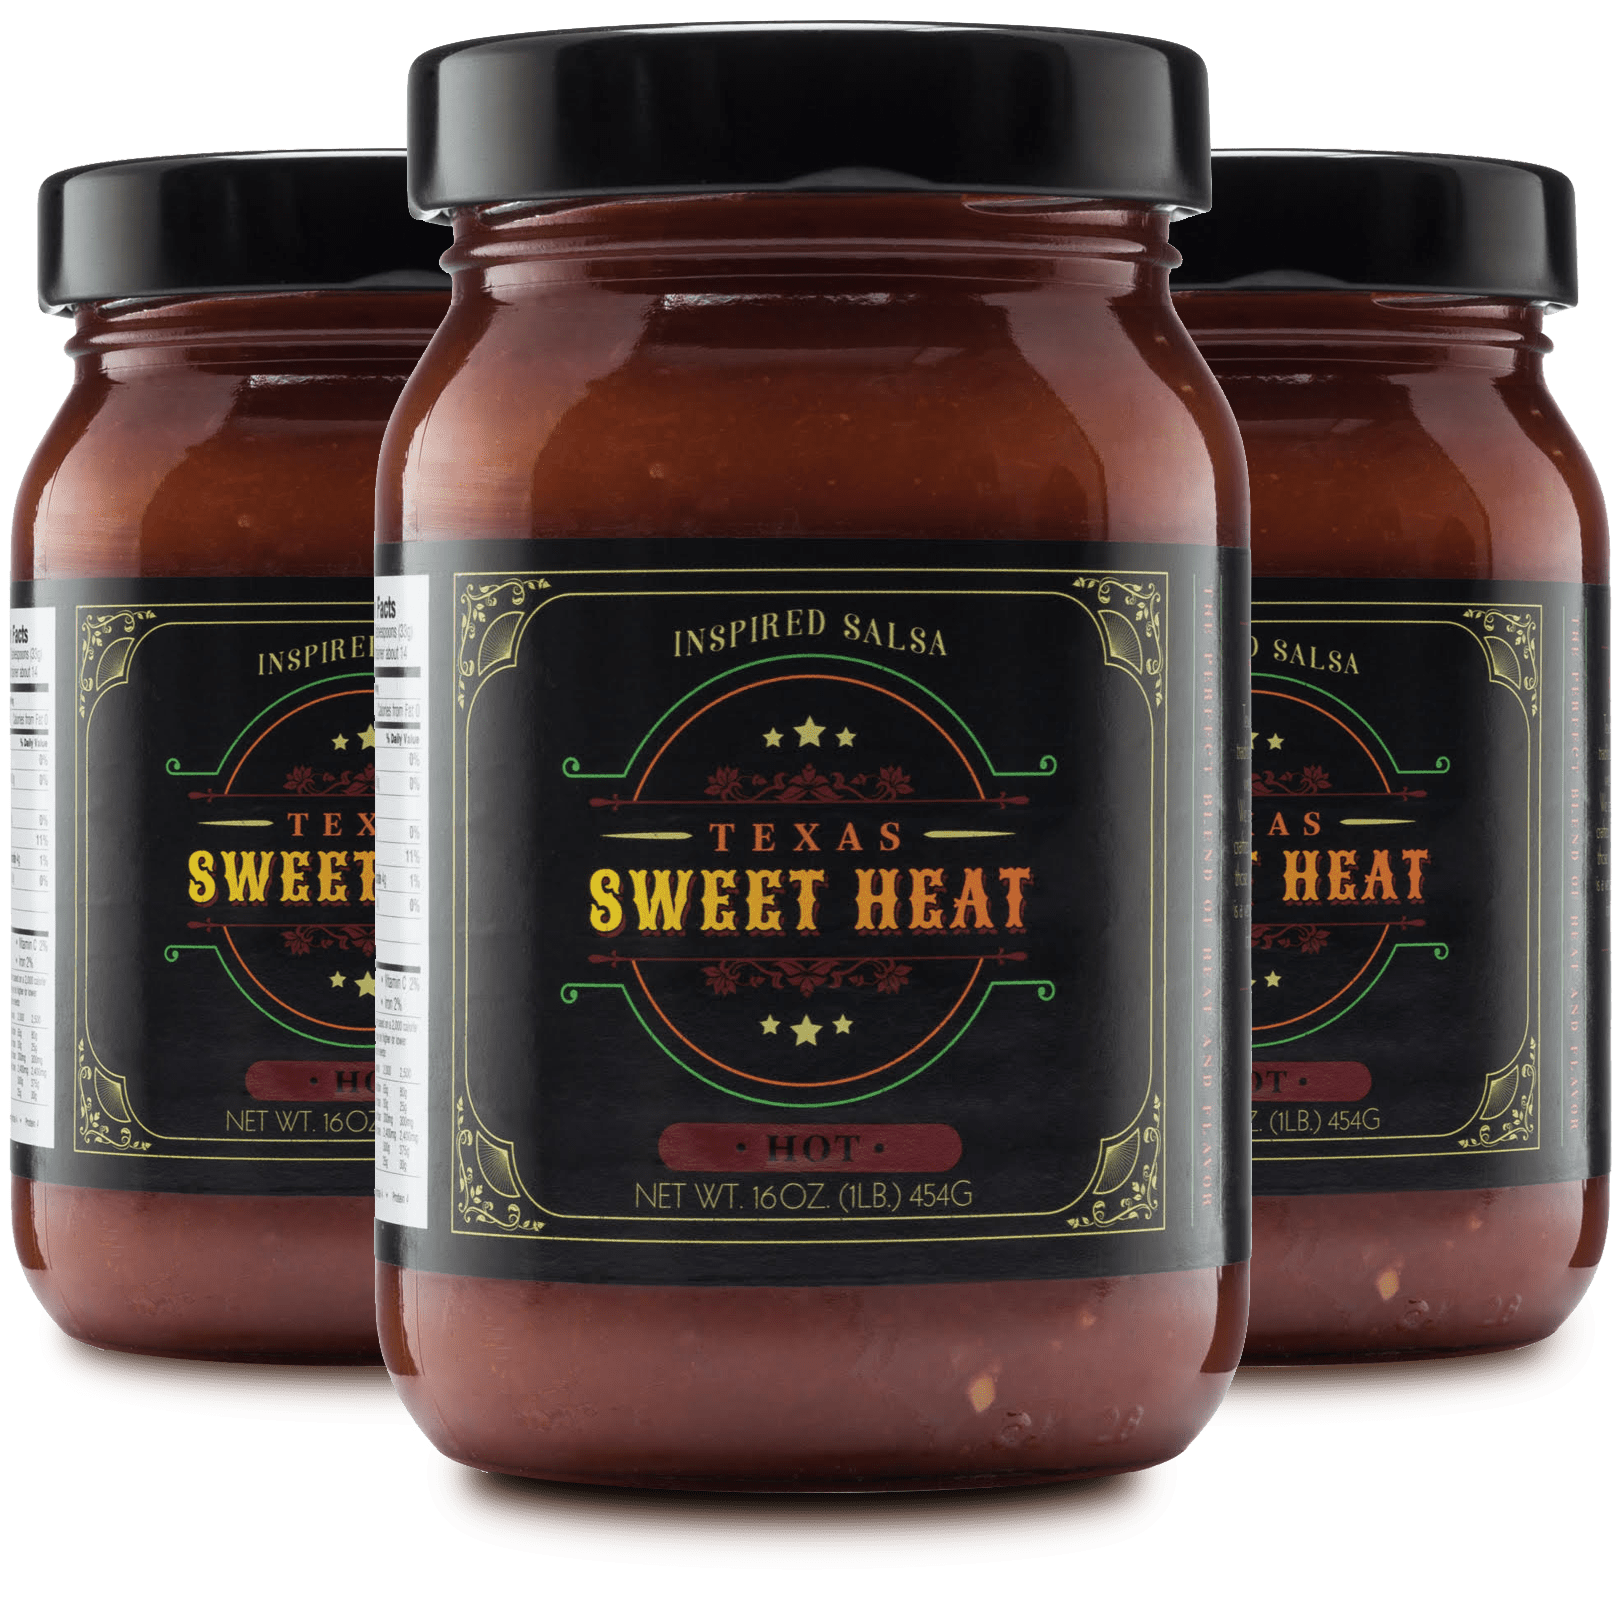 Texas Sweet Heat salsa